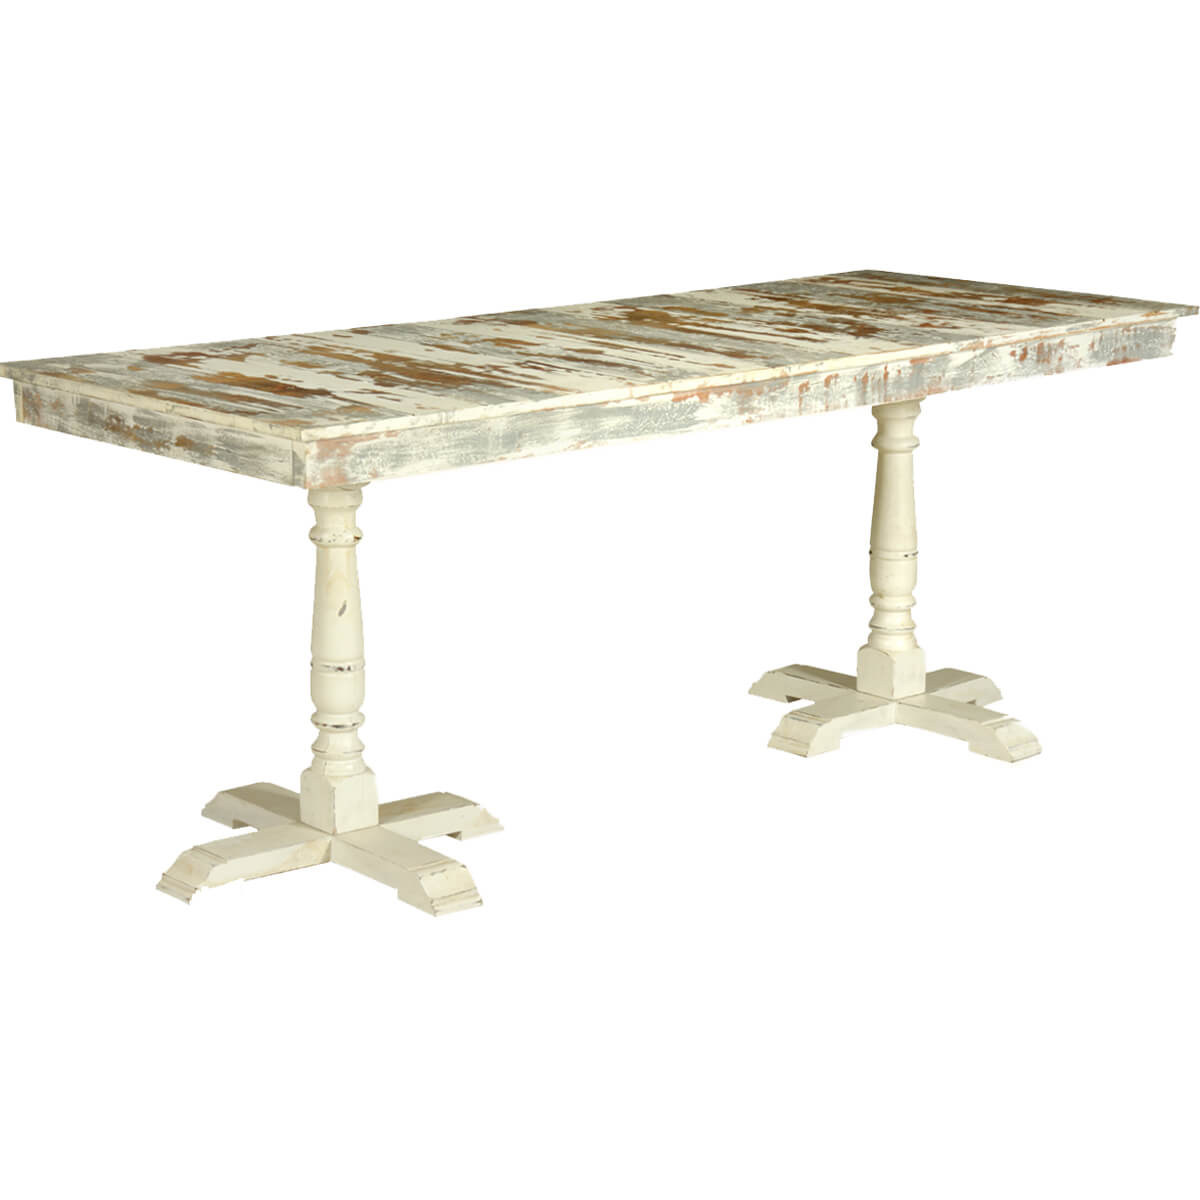 Grey amp White Distressed Mango Wood 785quot 2 Pedestal Dining  : 72072 from www.sierralivingconcepts.com size 1200 x 1200 jpeg 305kB